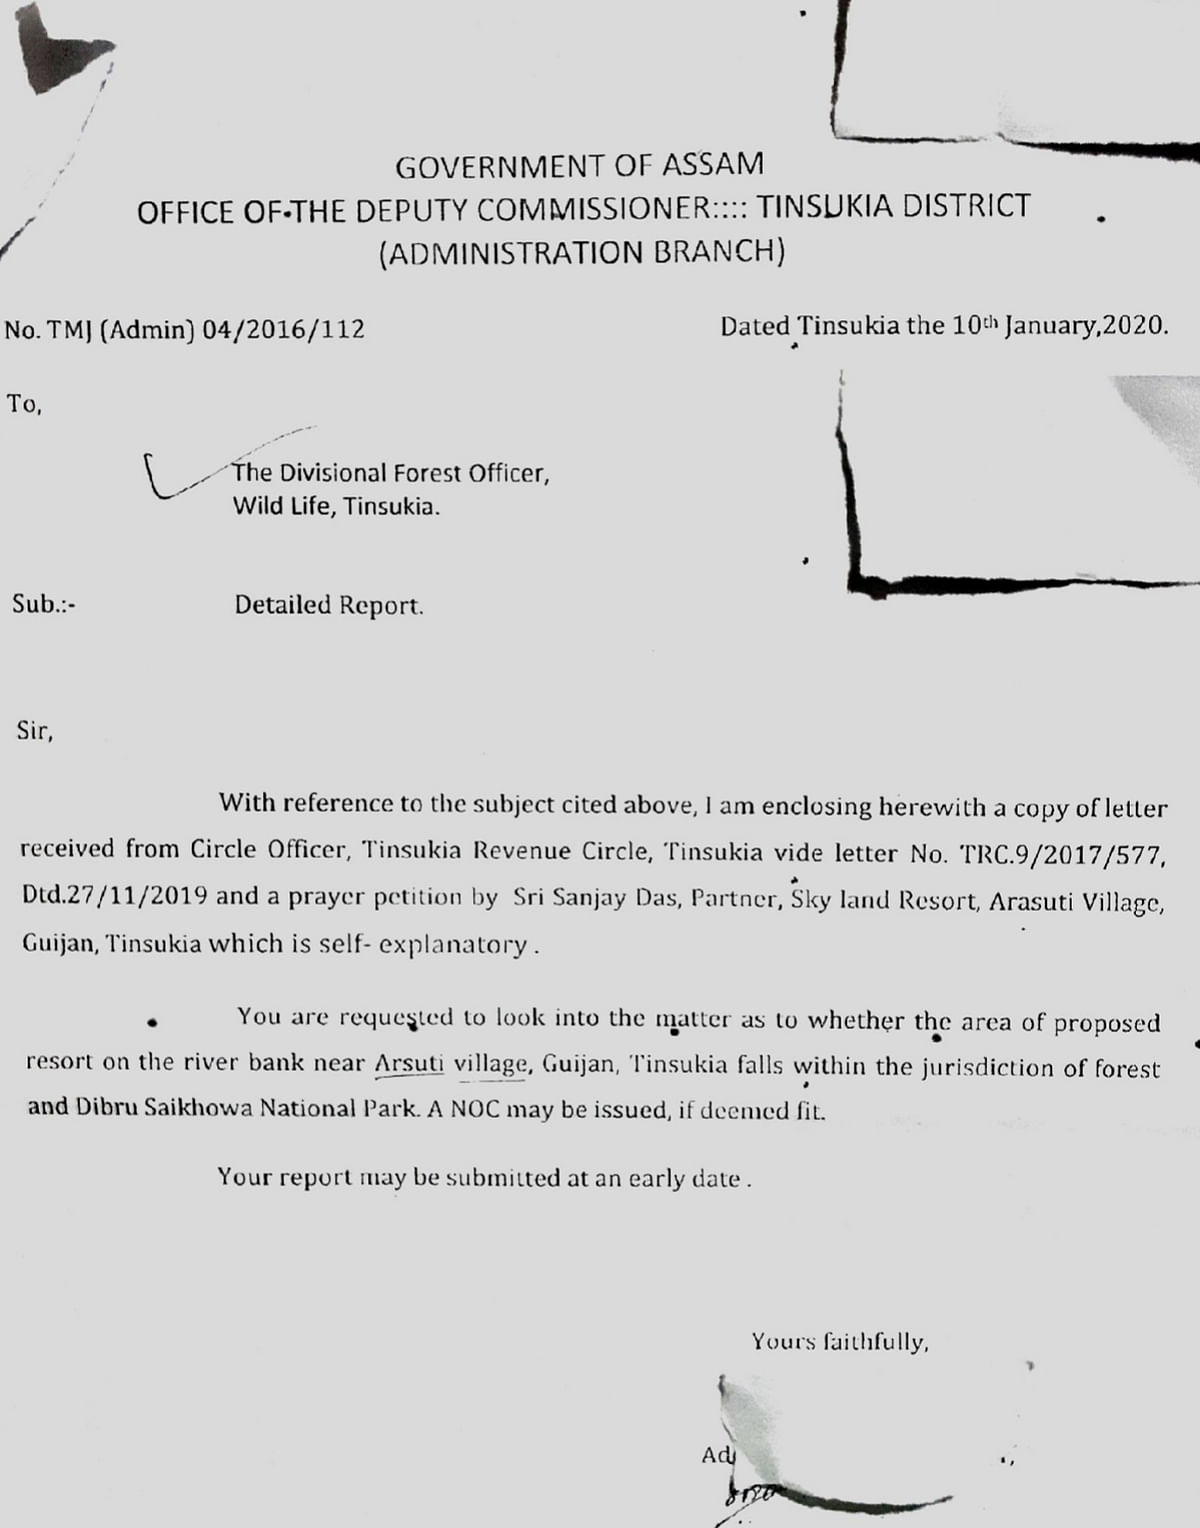 Copy of letter issued by office of the deputy commissioner of Tinsukia